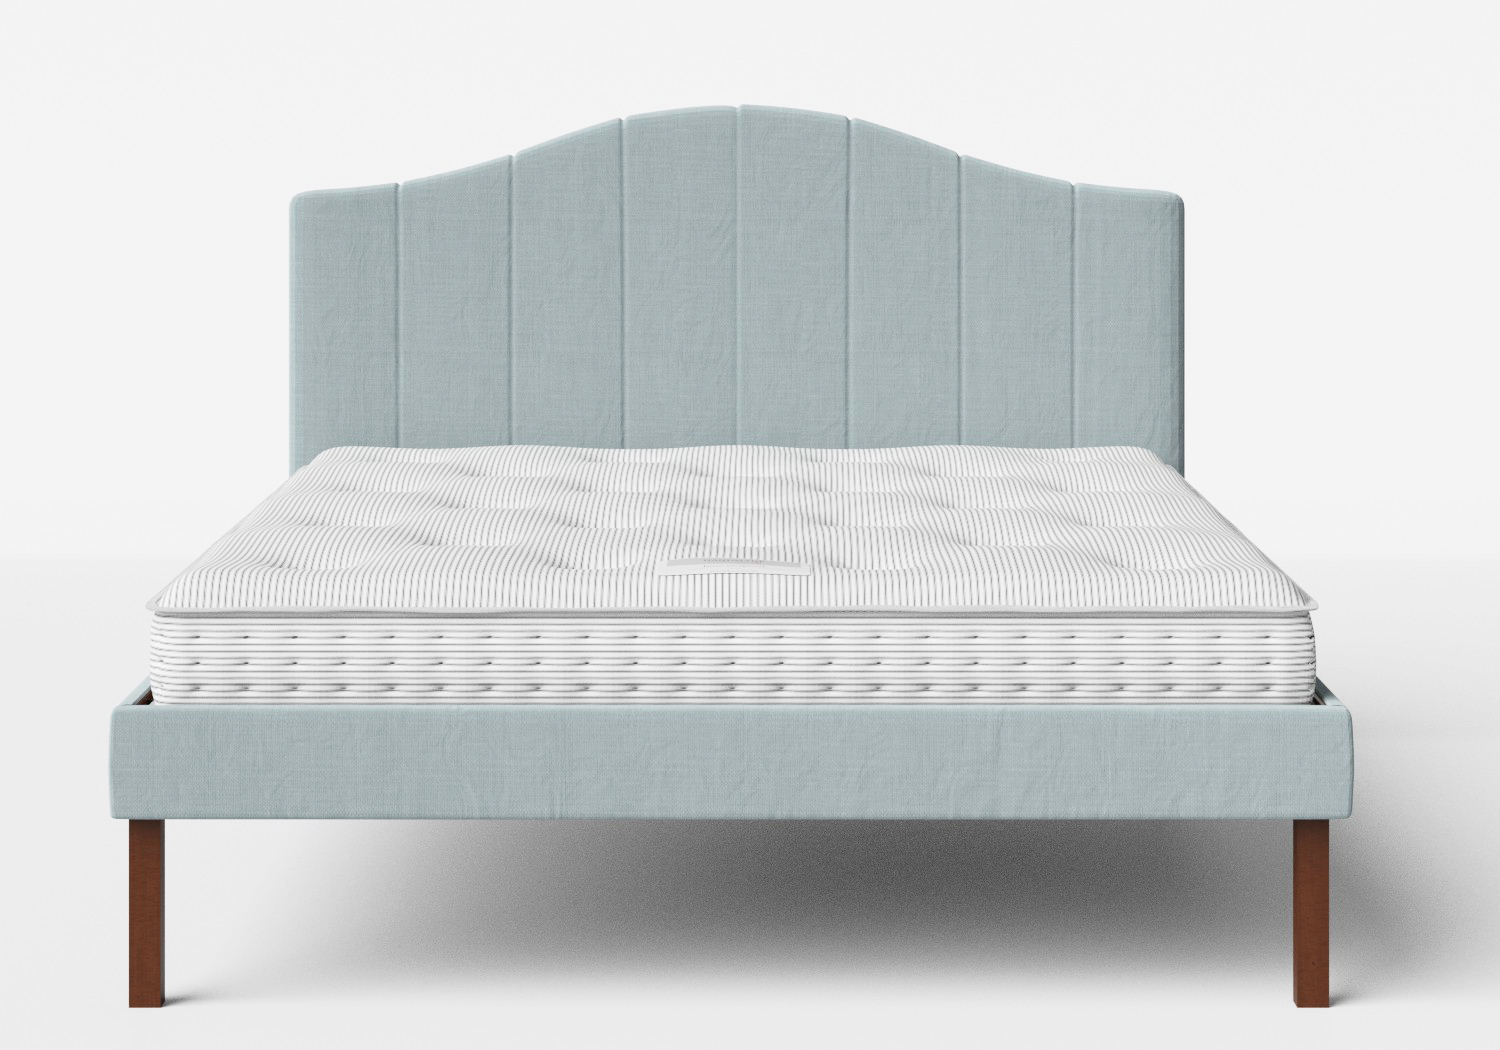 Yoshida Upholstered Bed with Wedgewood fabric shown with Juno 1 mattress